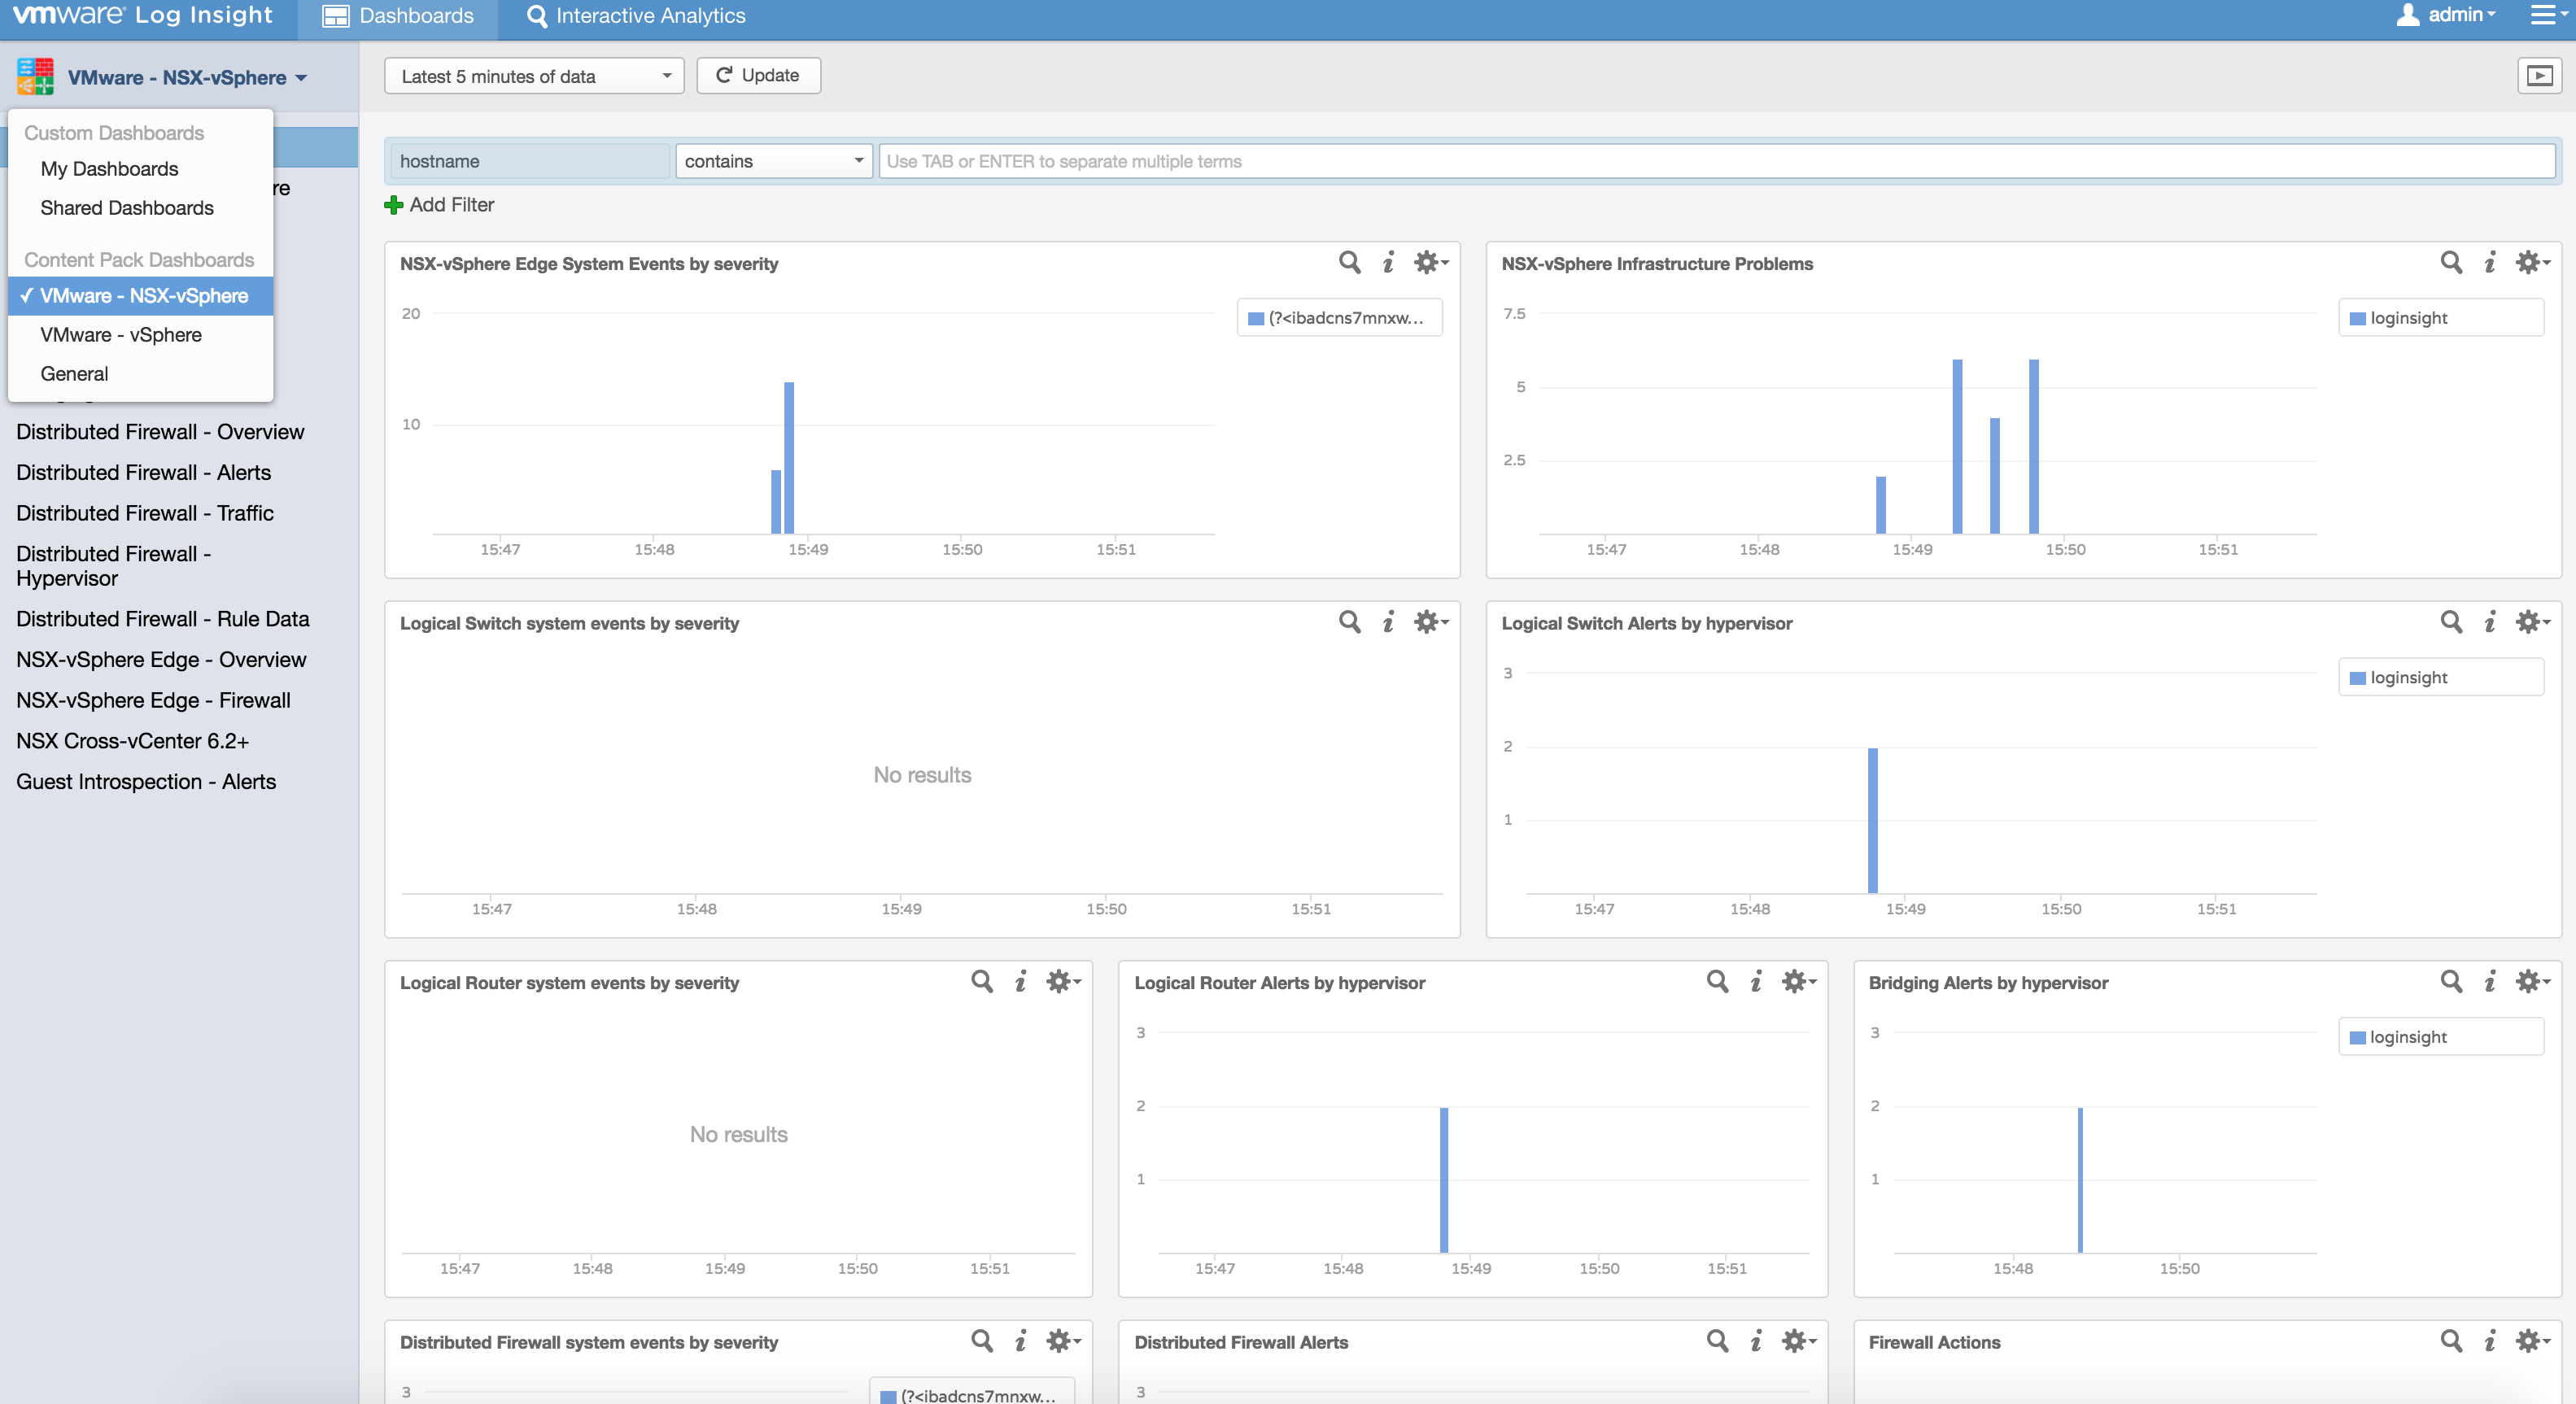 Deploying vRealize Log Insight with NSX Content Pack